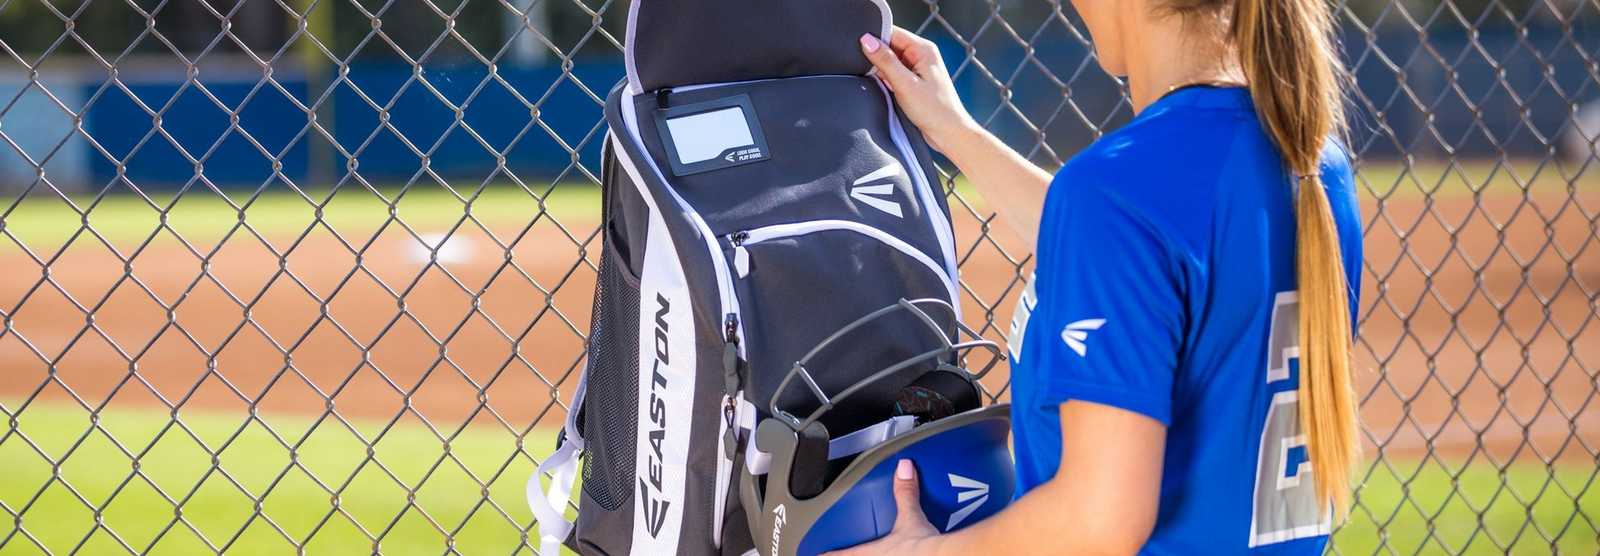 2018-fastpitch-softball-bags-backpacks